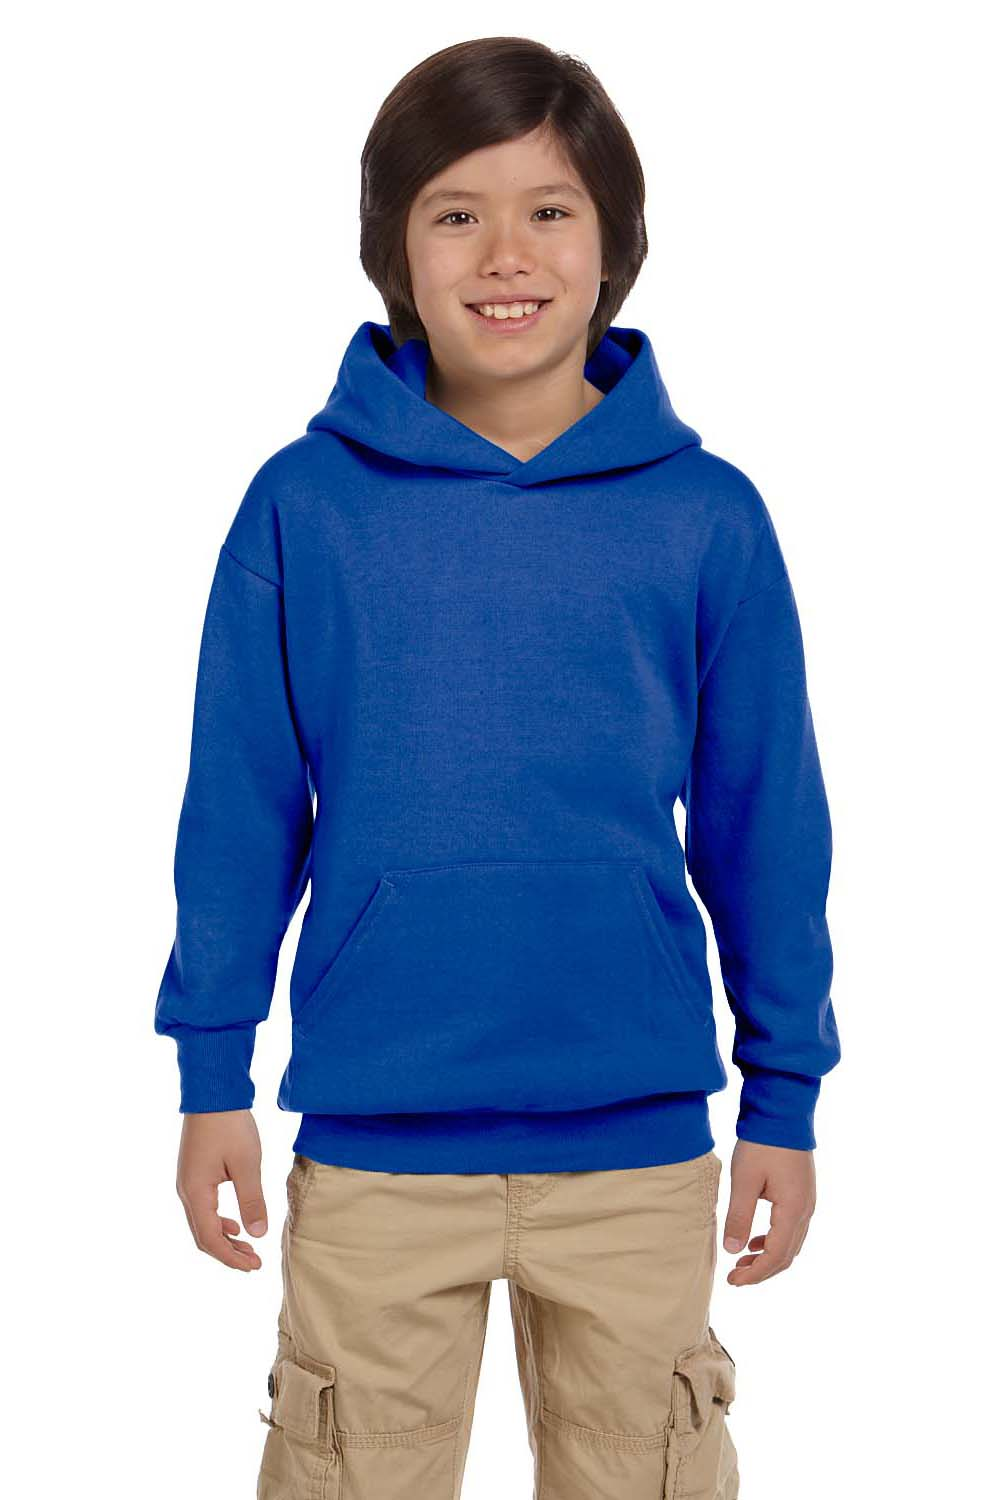 Hanes P473 Youth EcoSmart Print Pro XP Hooded Sweatshirt Hoodie Royal Blue Front